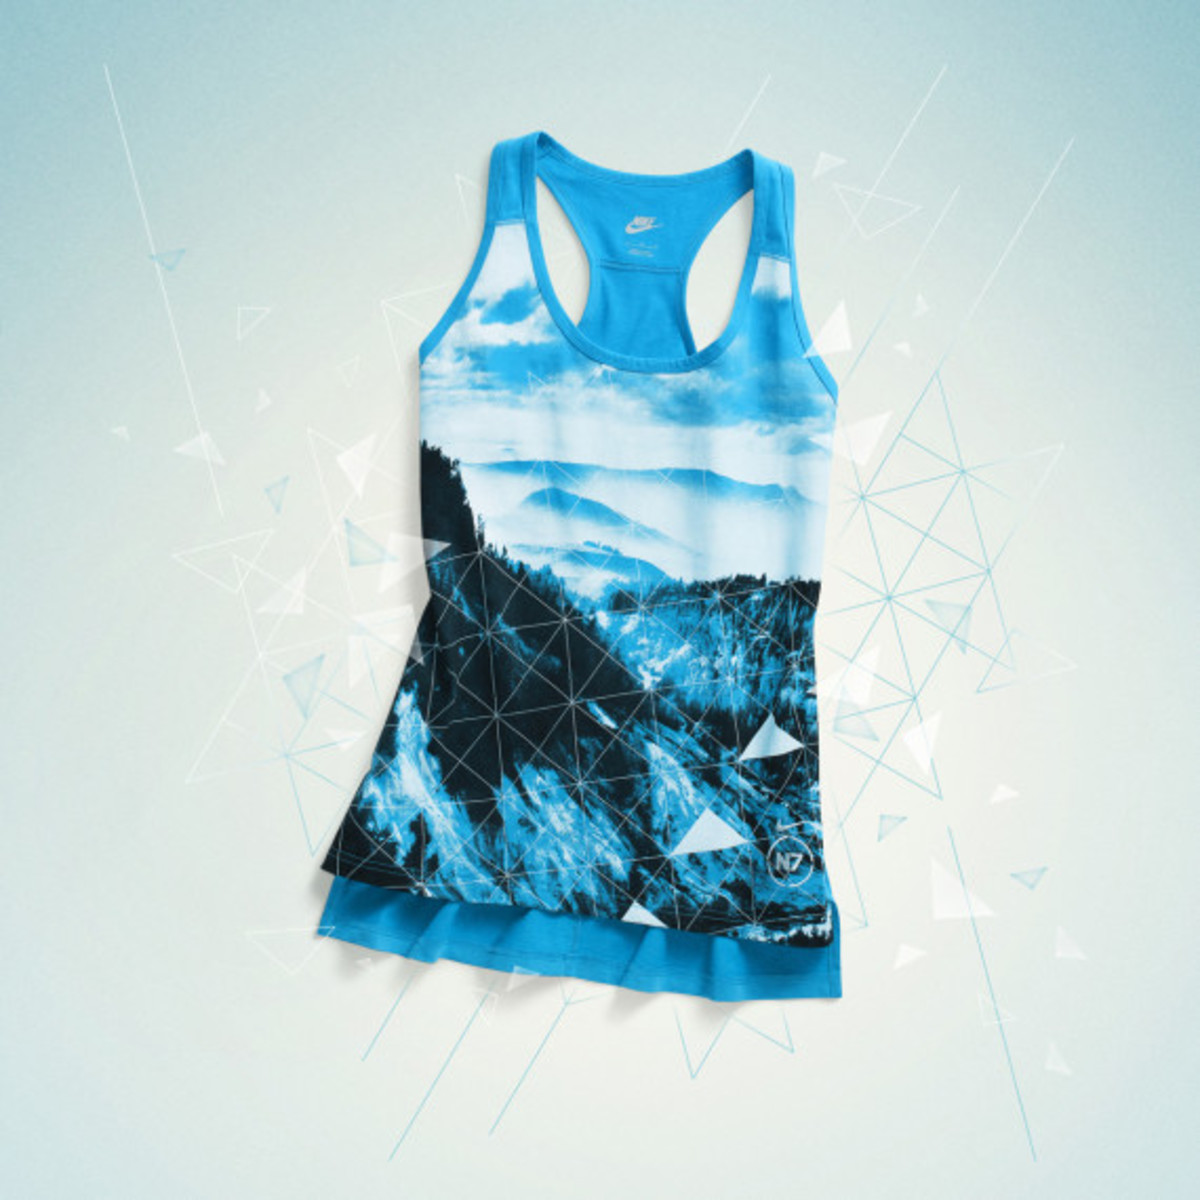 nike-n7-summer-2014-collection-07